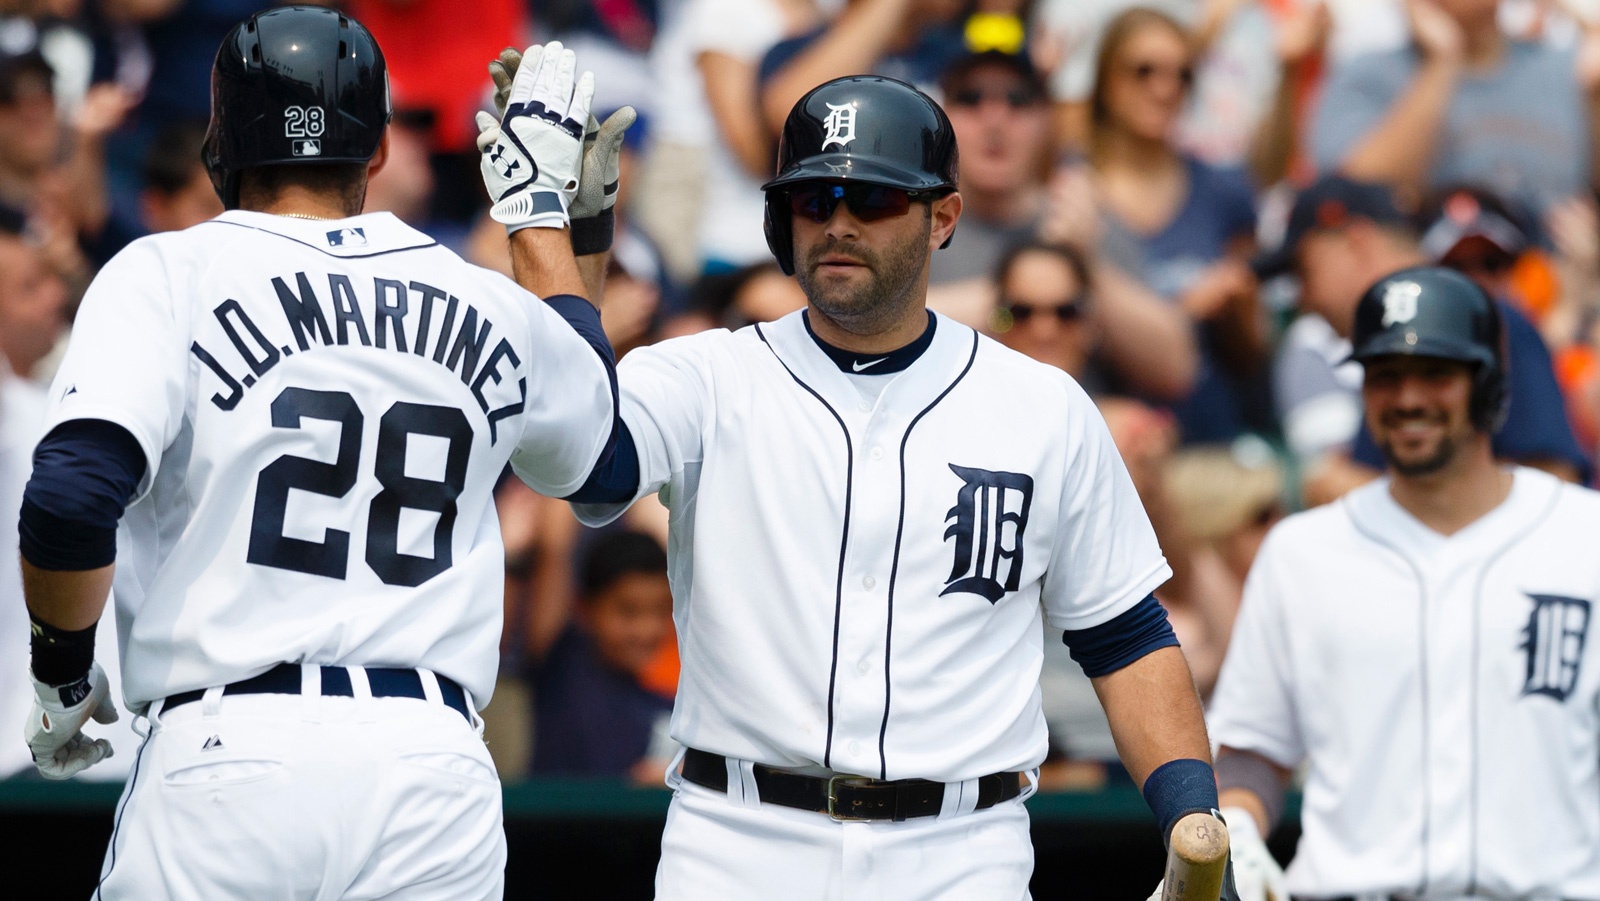 Tigers look to get on track against Mariners Monday